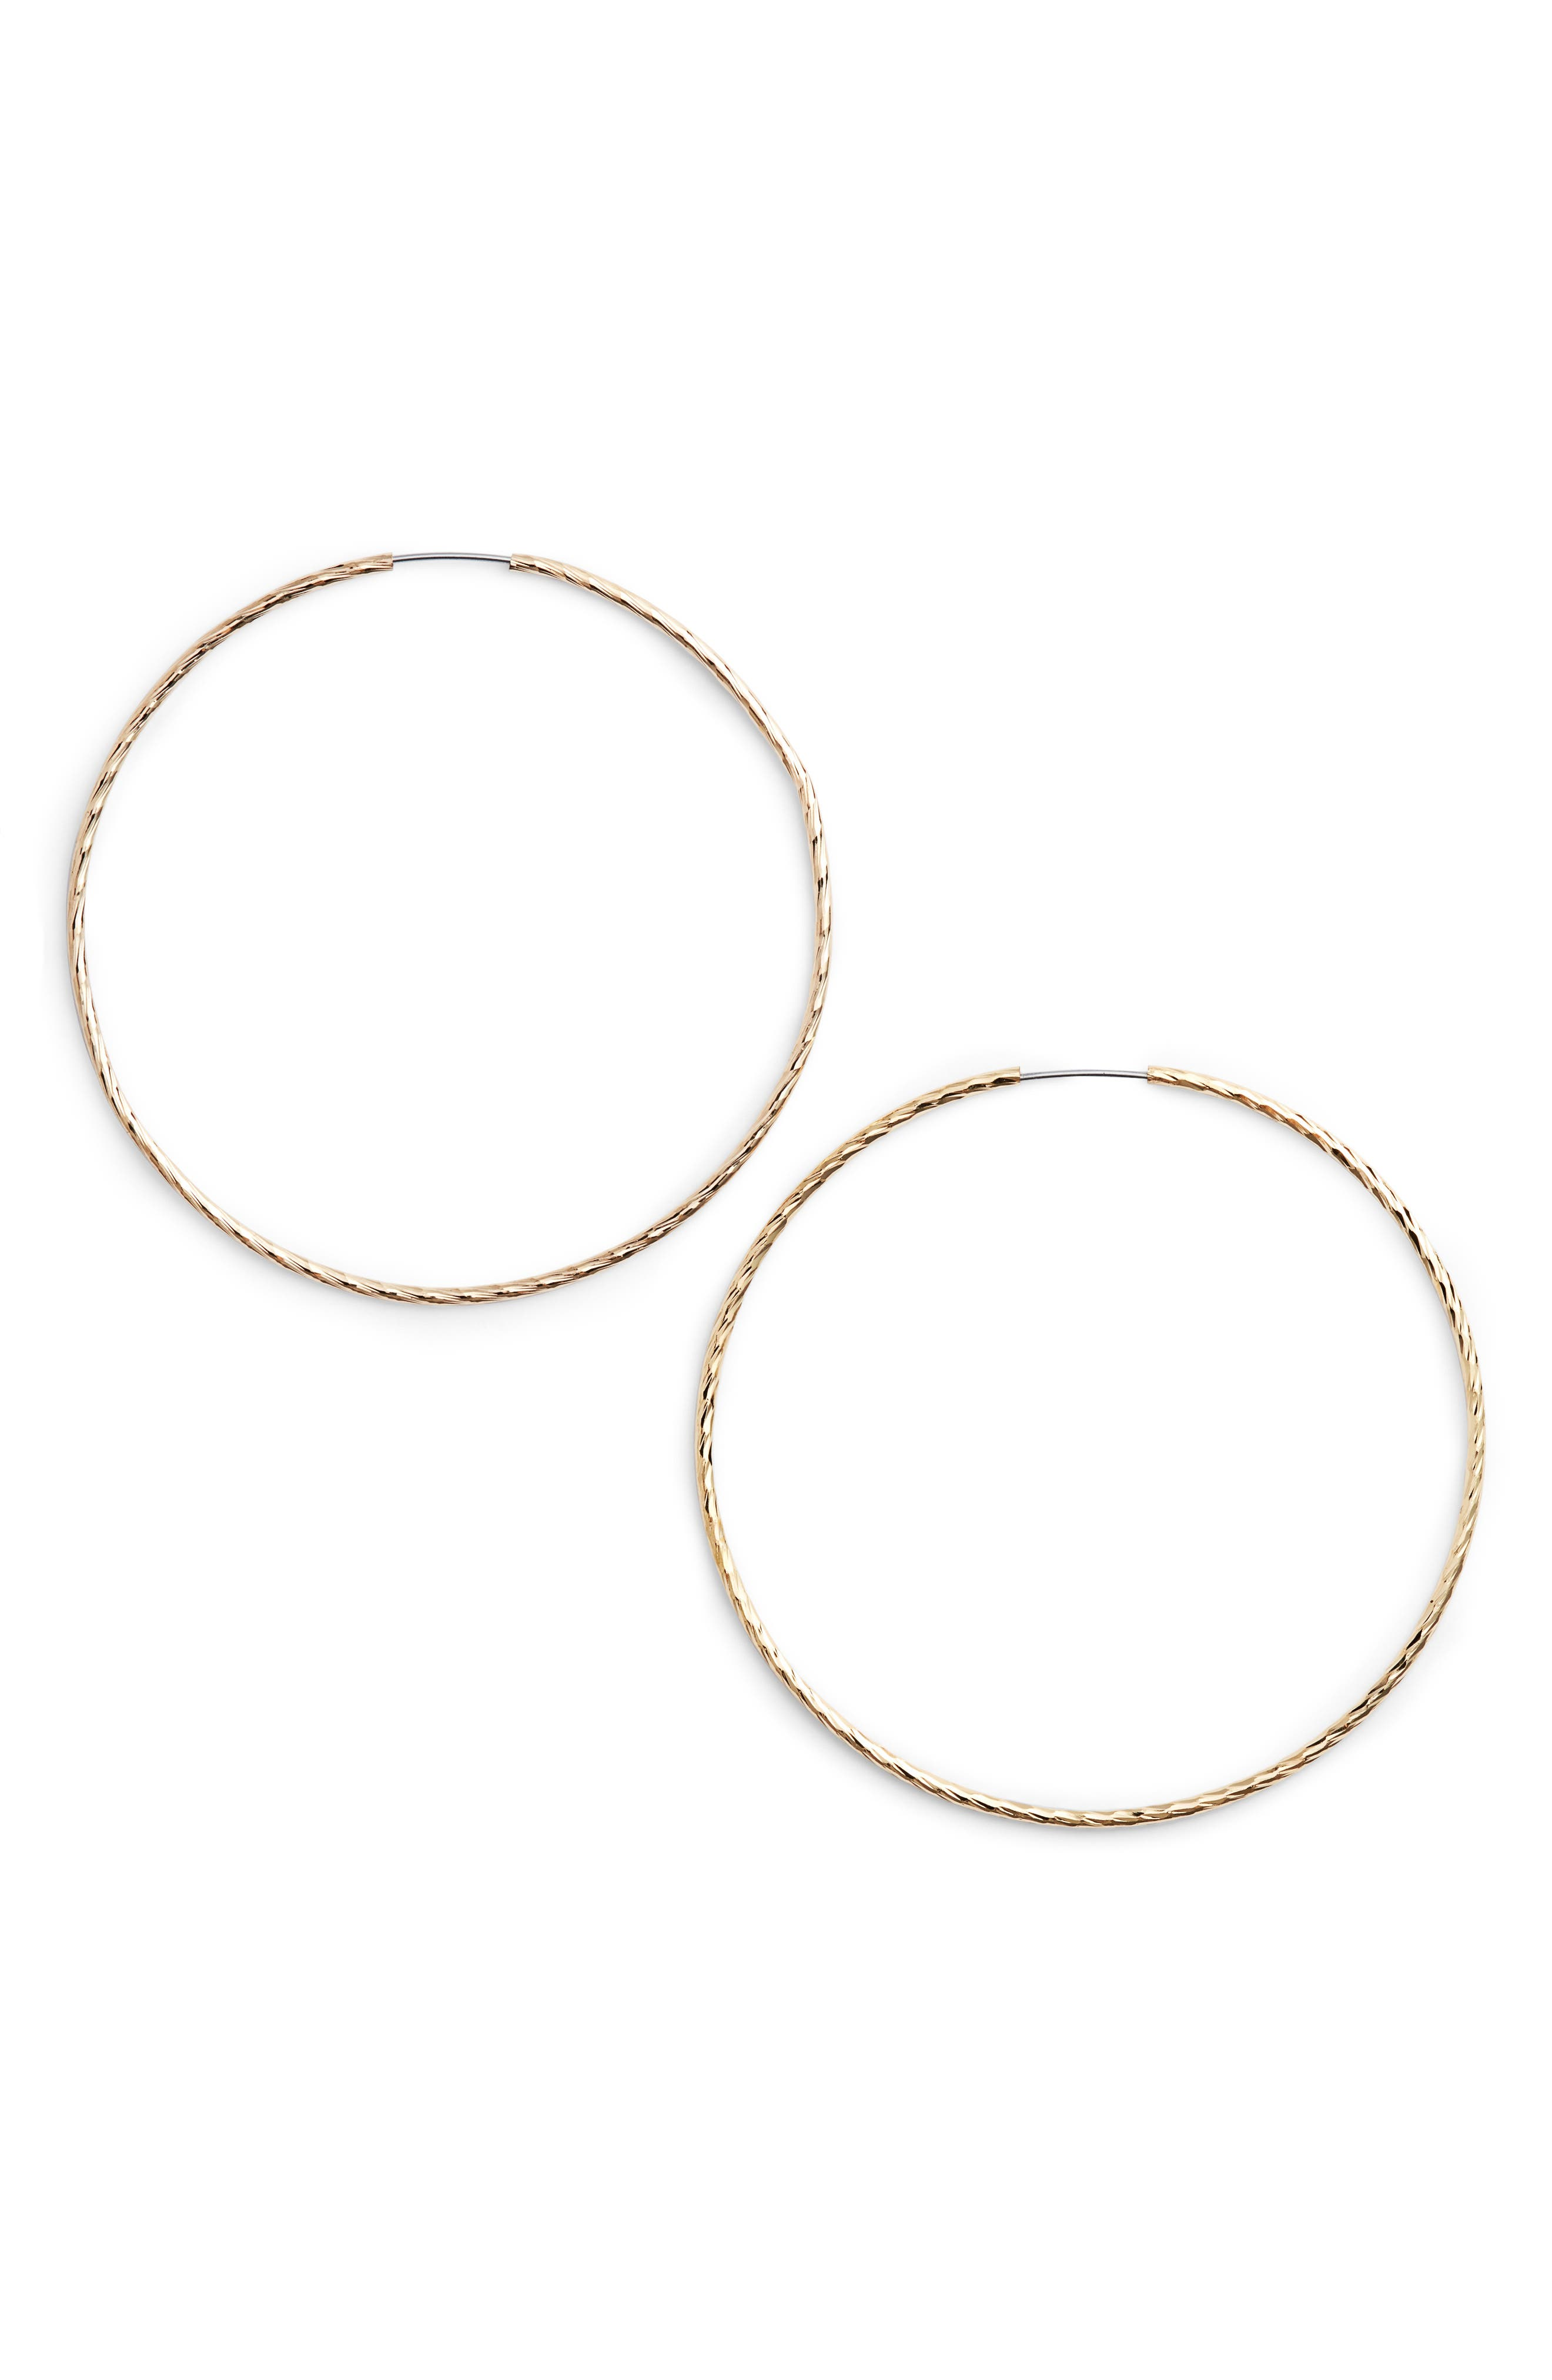 Jules Smith Factor Hoop Earrings